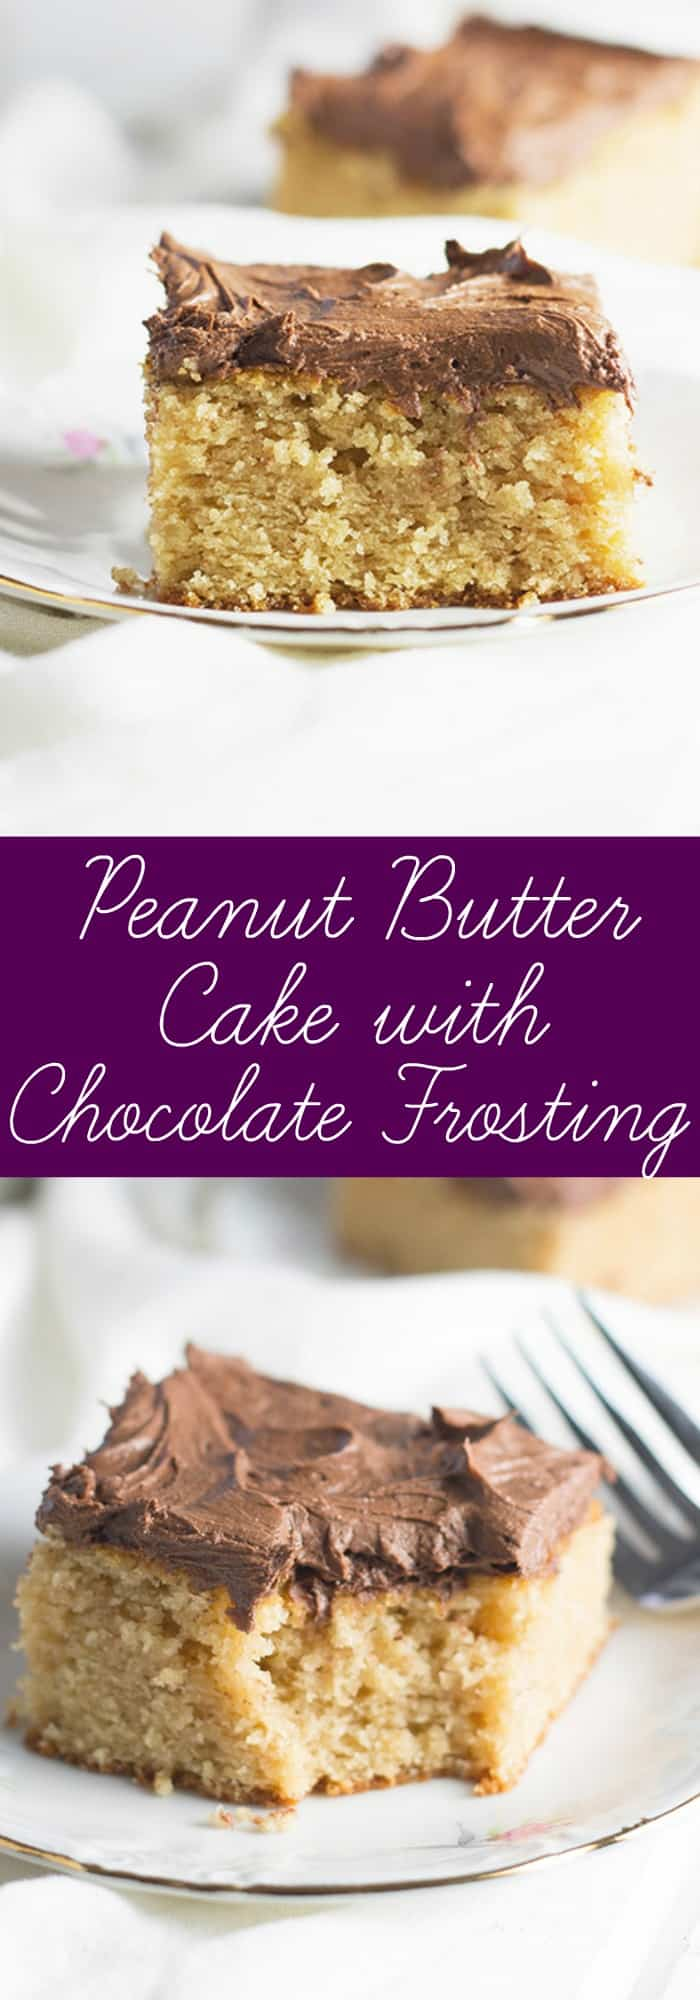 Peanut Butter Cake with Chocolate Frosting- this is an easy cake that is full of peanut butter flavor and topped with a rich and creamy chocolate frosting! | countrysidecravings.com